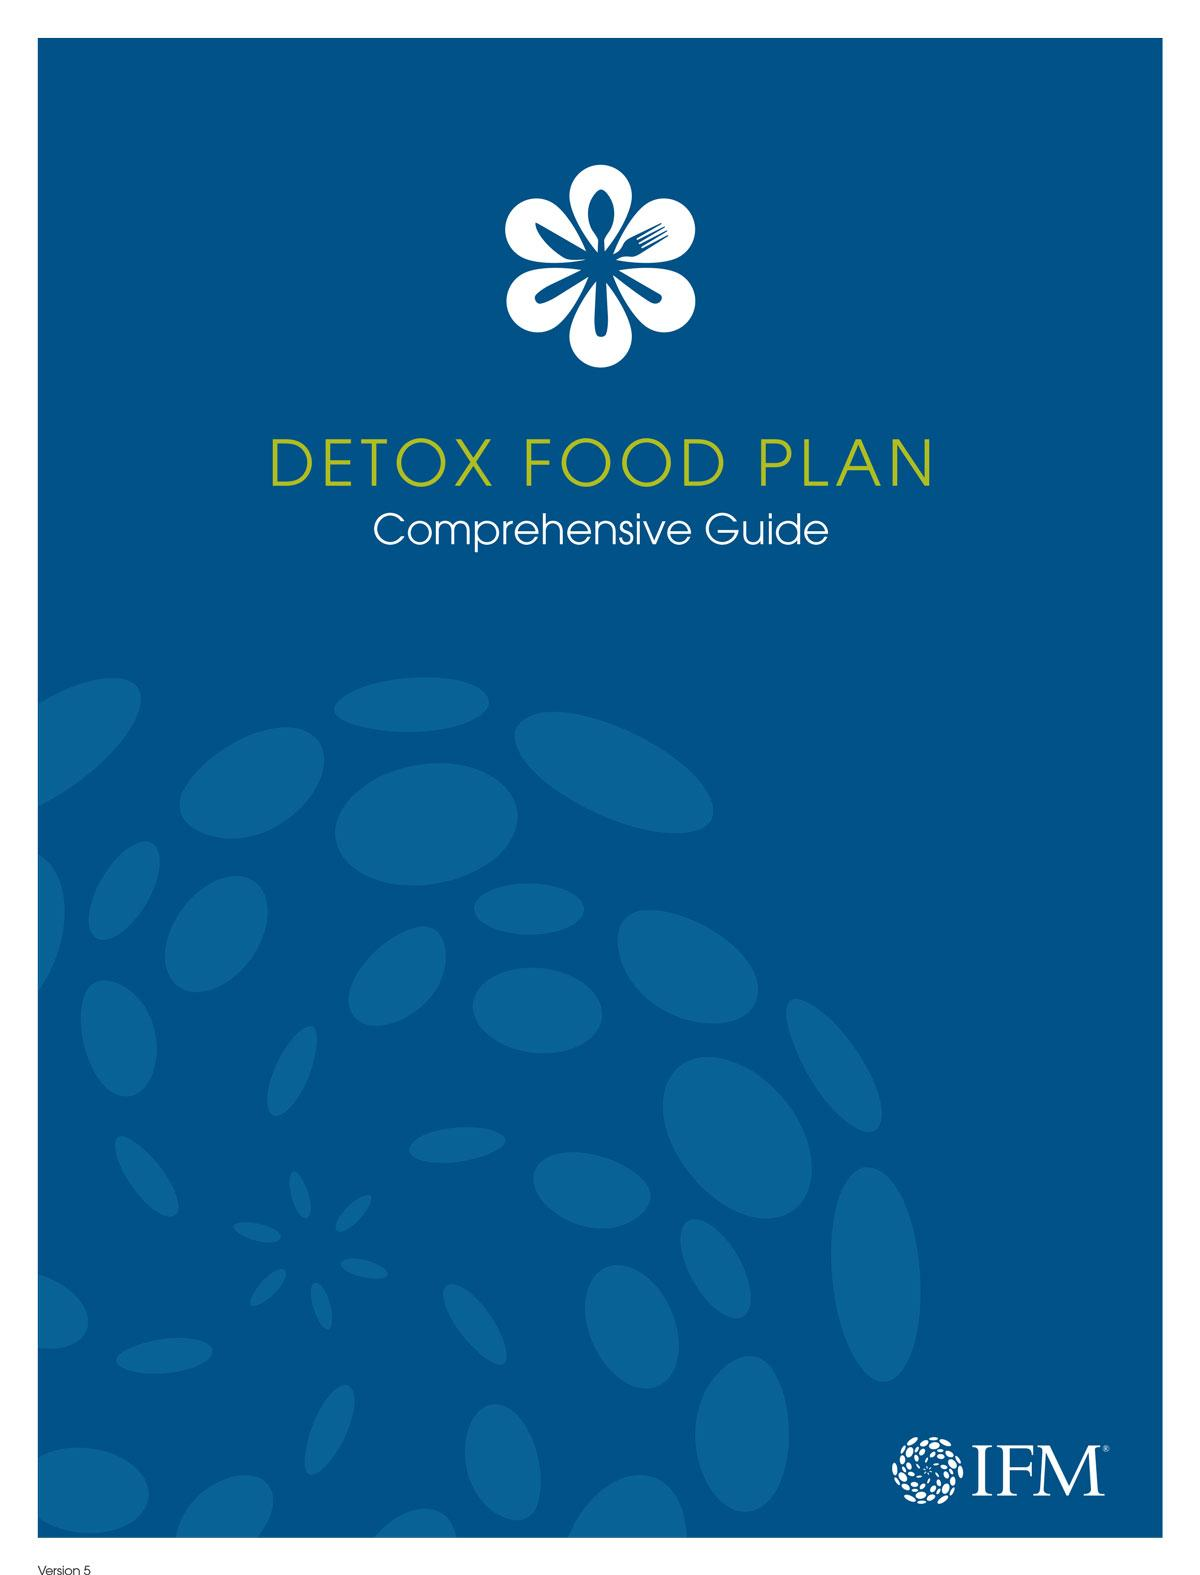 Detox Food Plan Comprehensive Guide